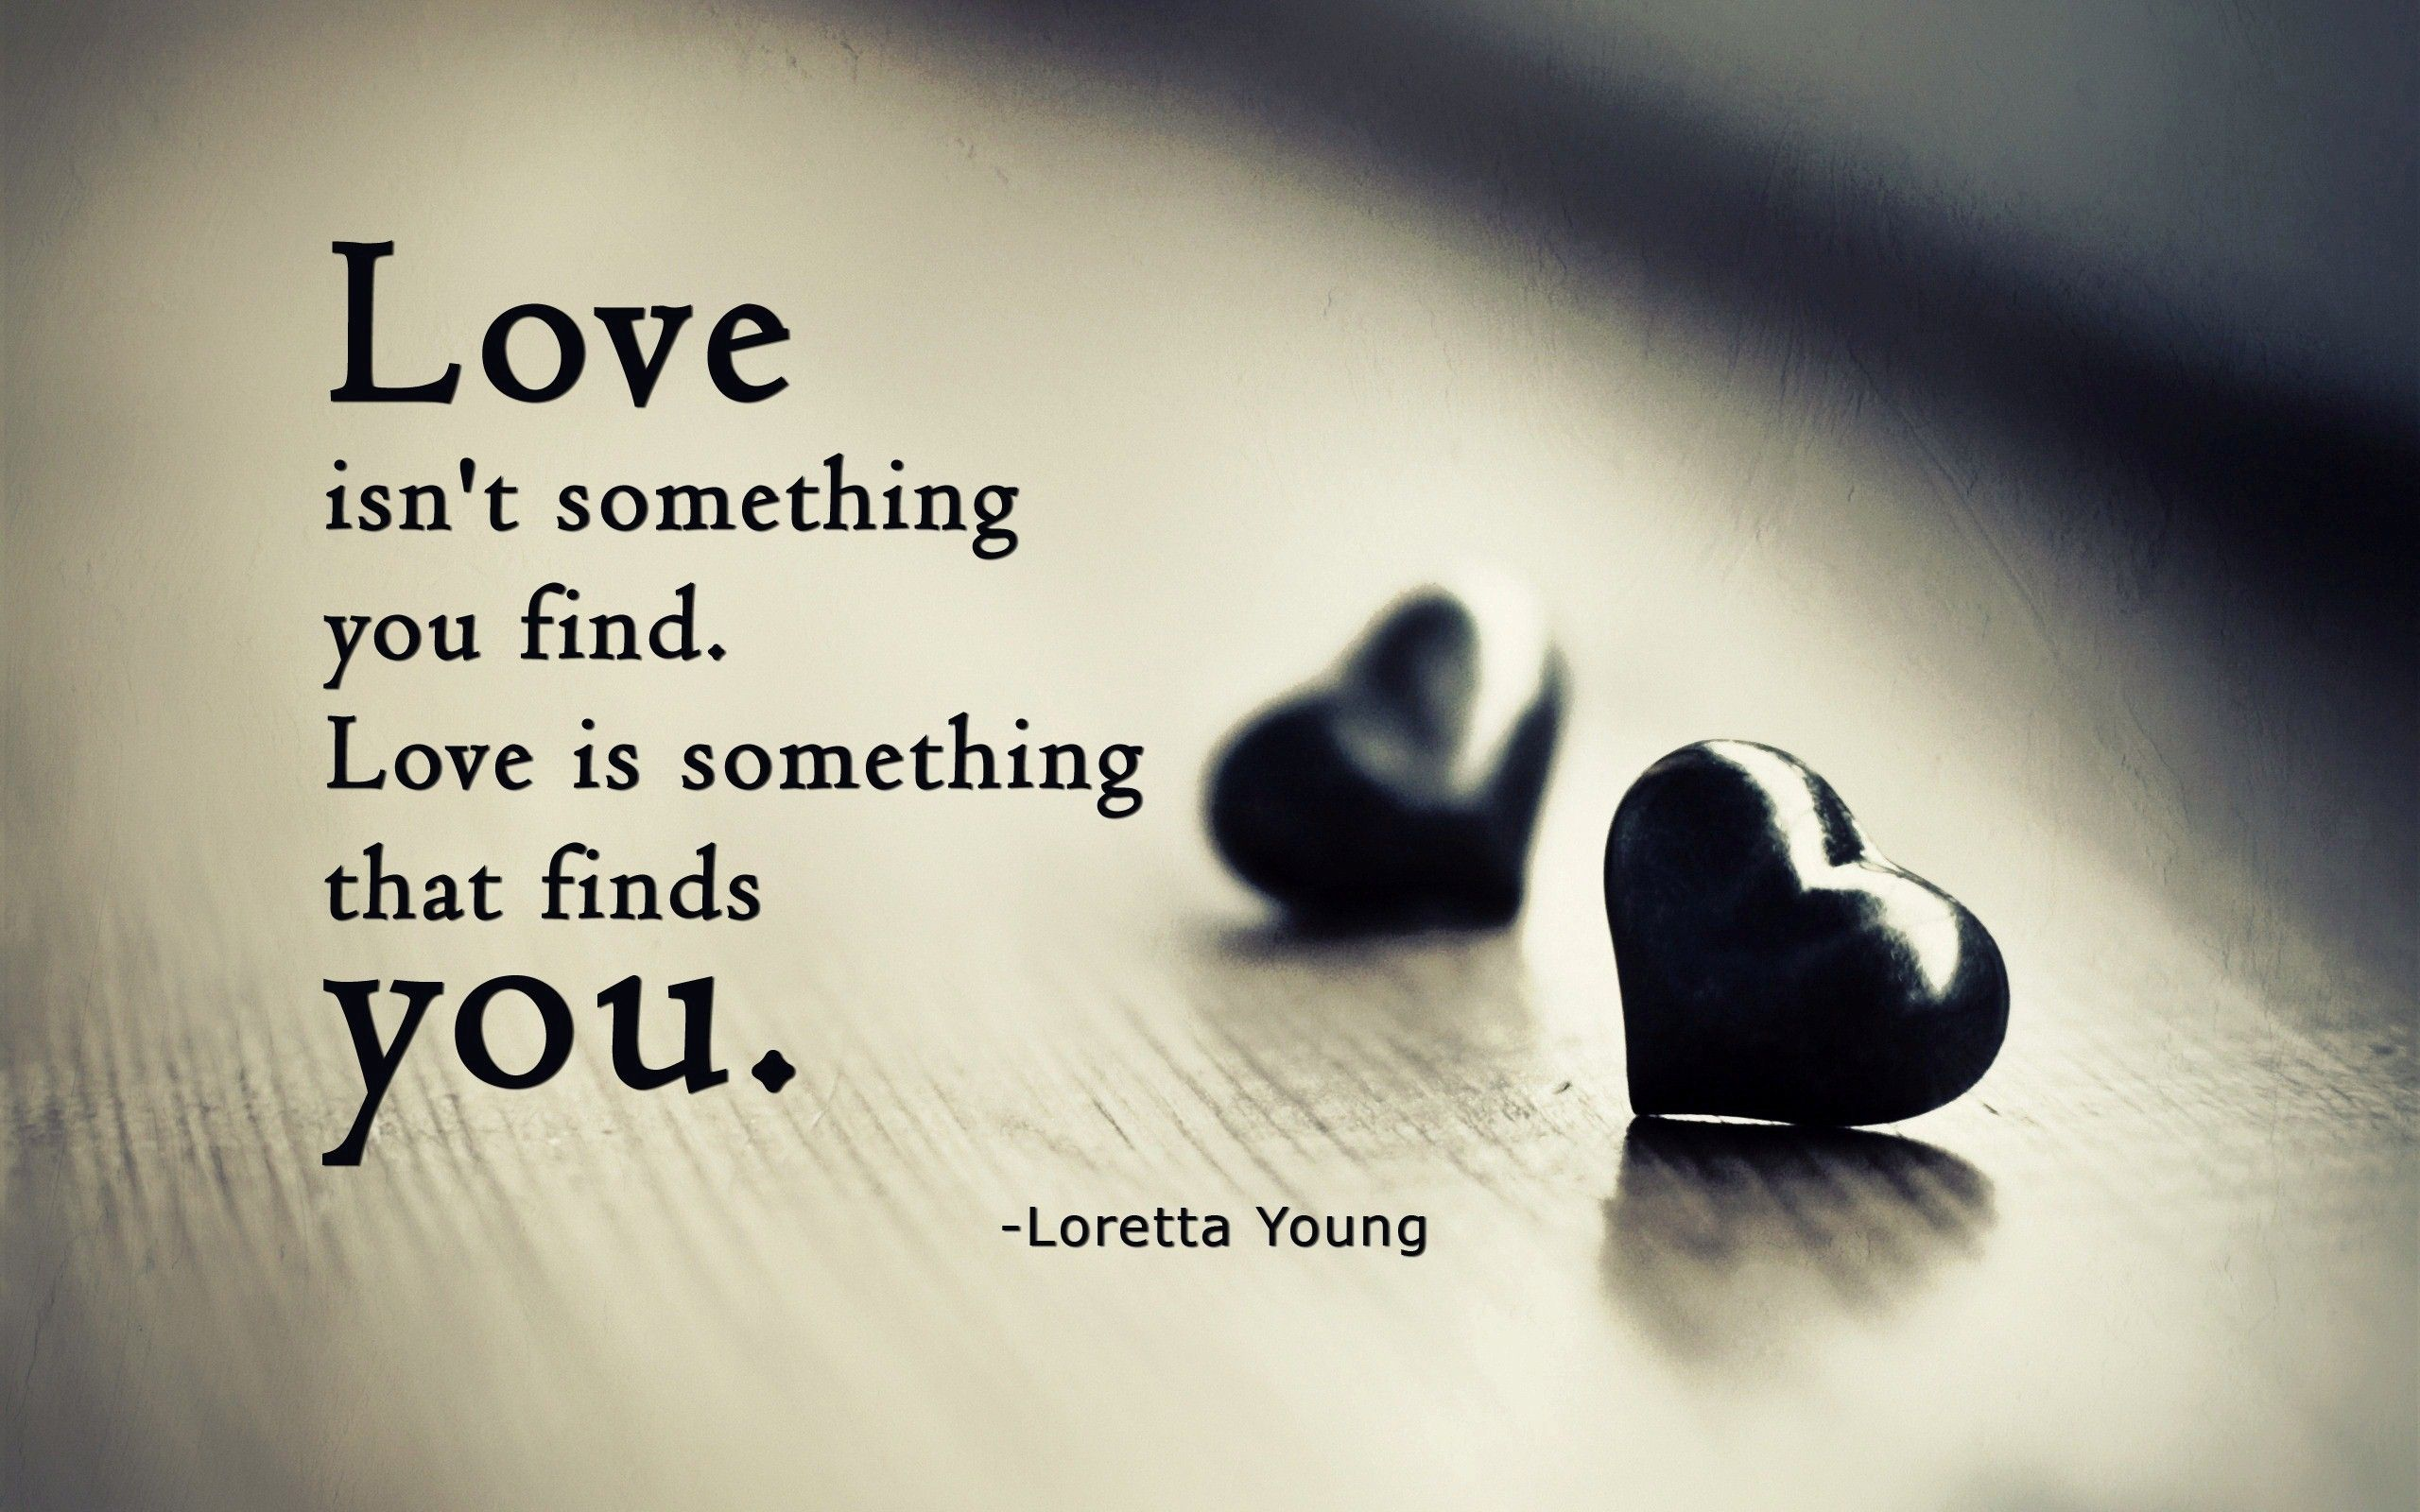 Love Image In Hd Wallpaper Hd Love Quotes Wallpaper Love Quotes With Images Love Life Quotes